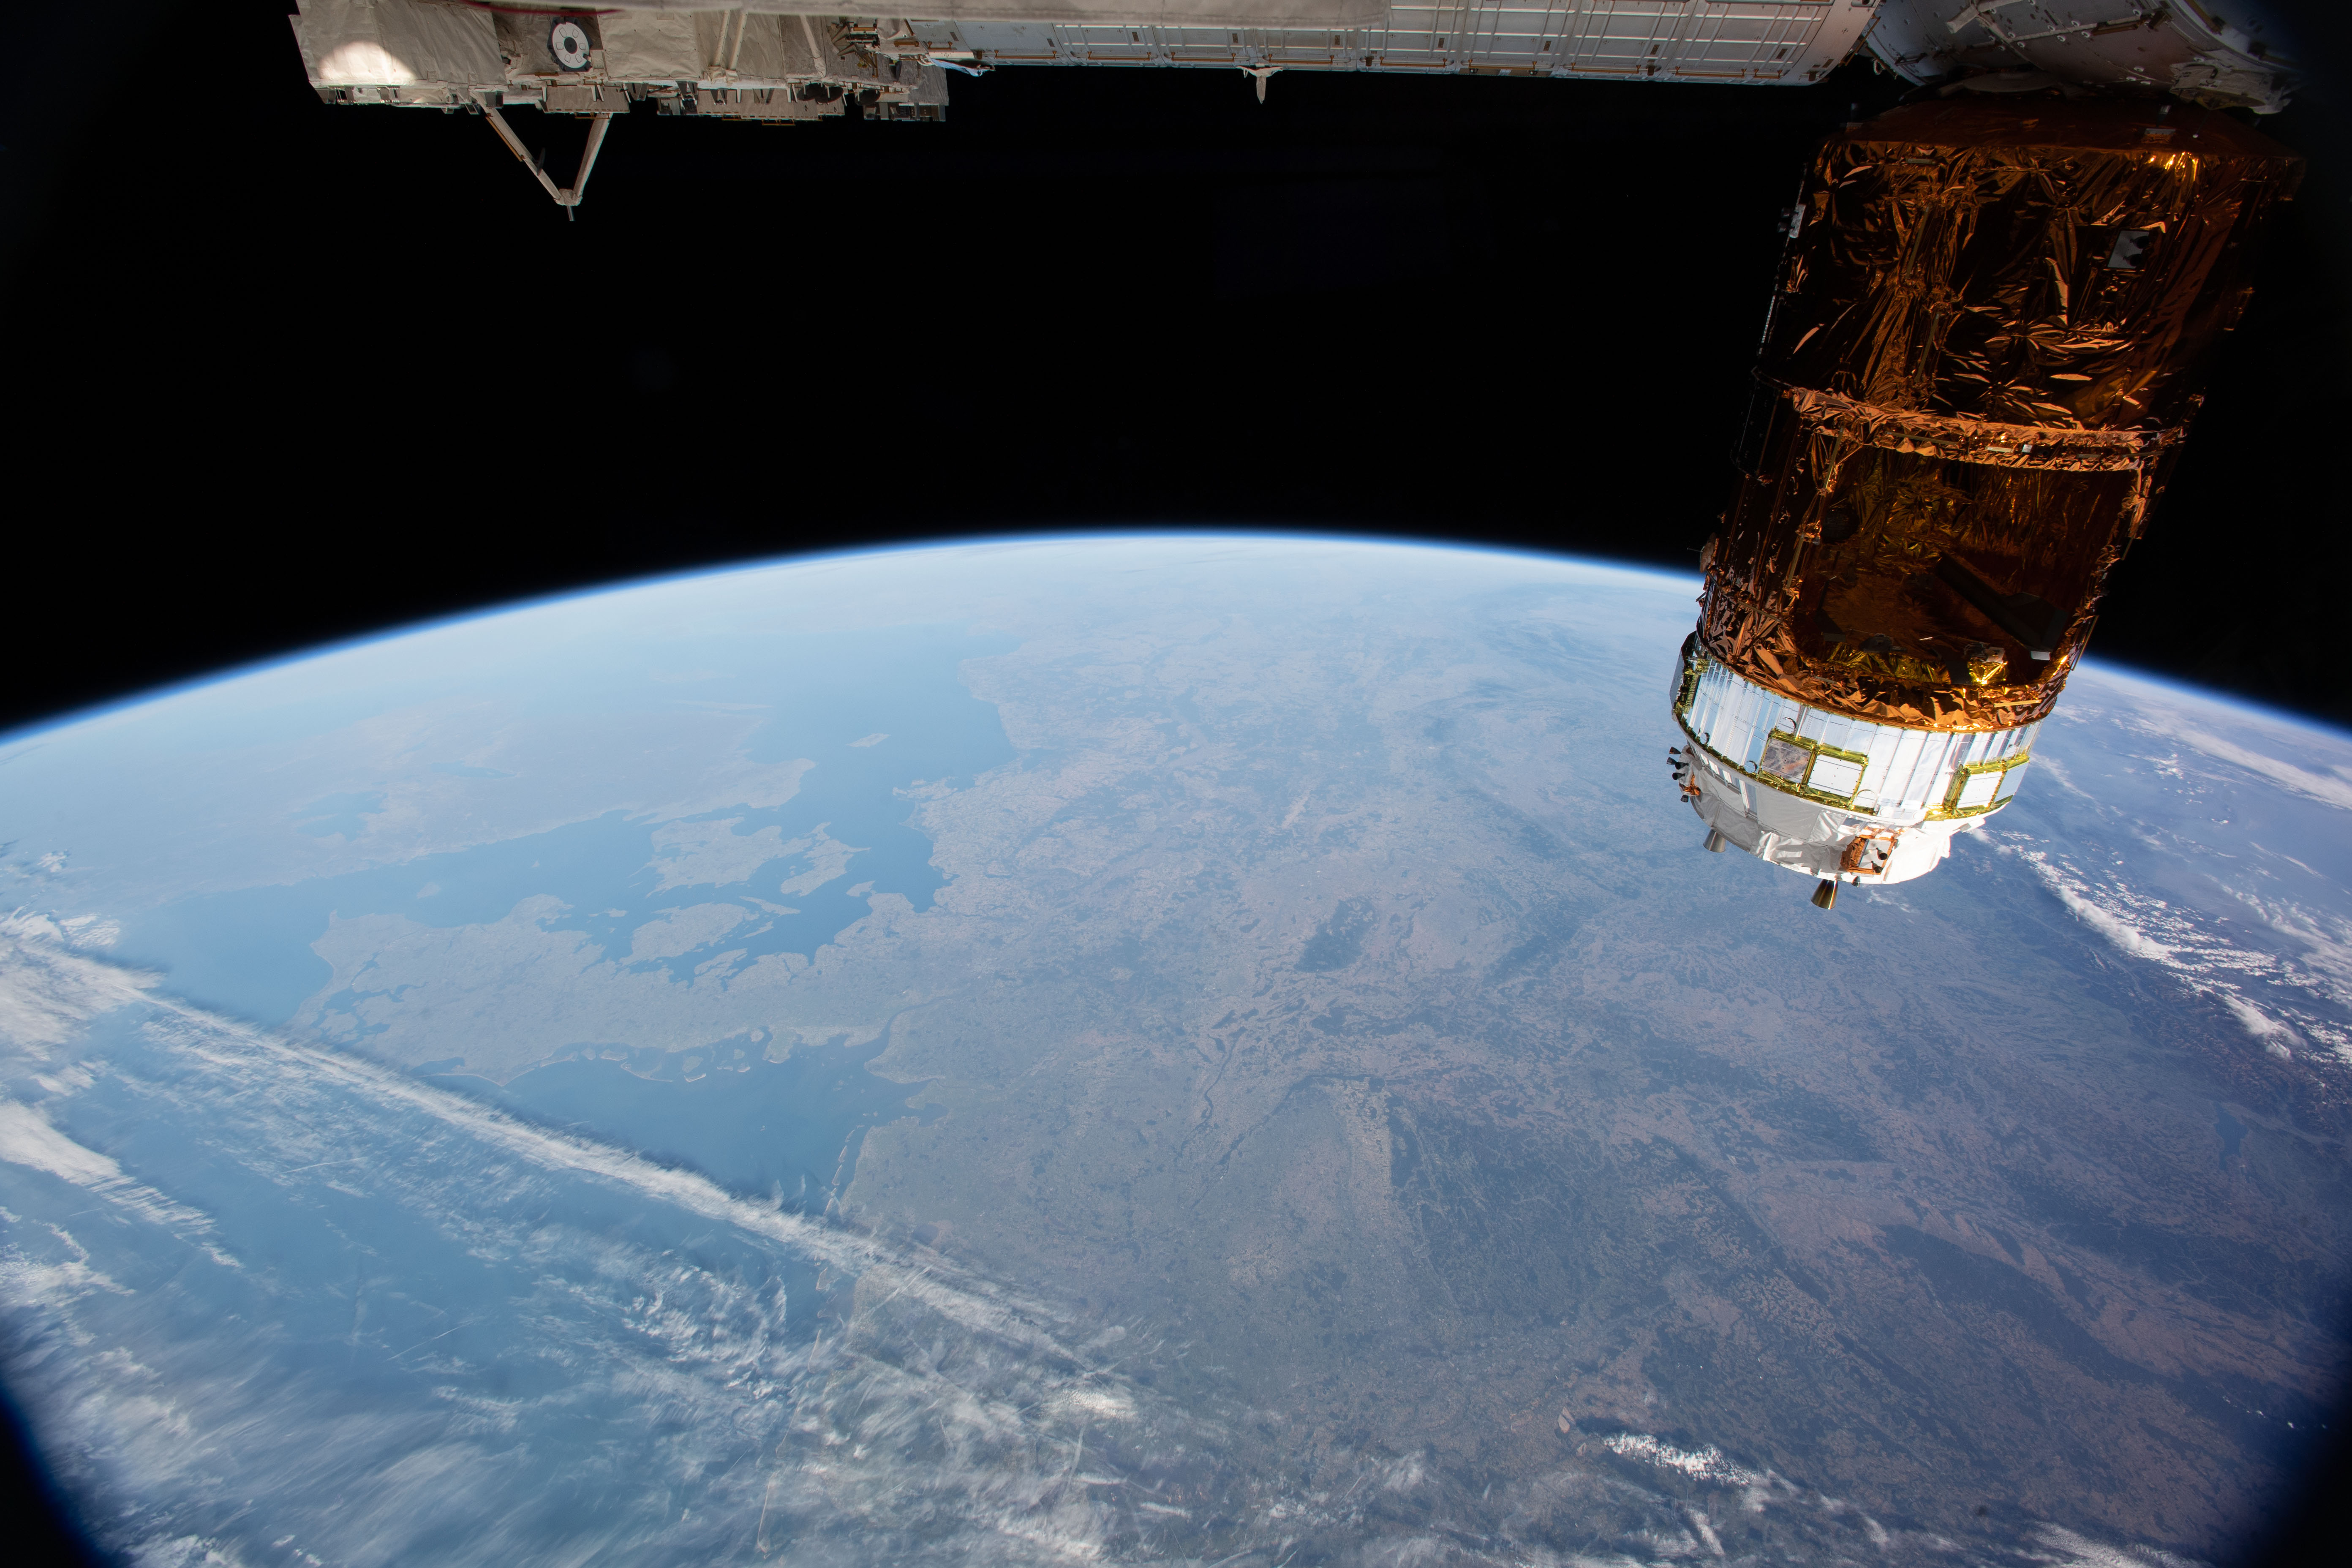 Producing time-lapse video onboard the International Space